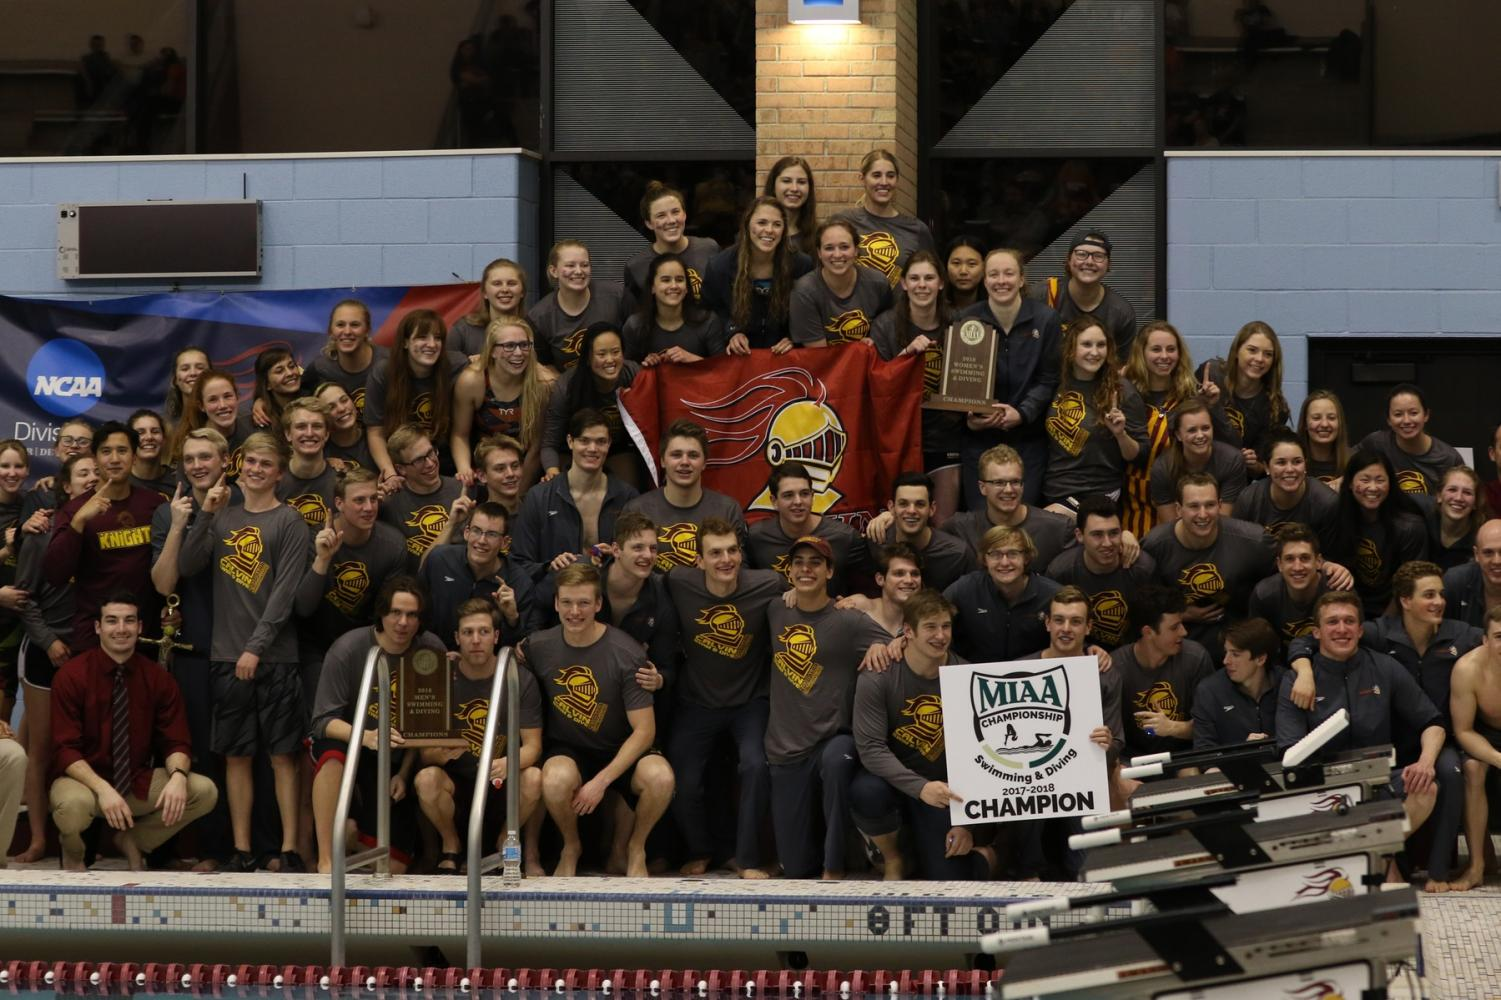 The men's and women's swimming and diving teams celebrate together after their victories. Photo courtesy Calvin Sports Information.